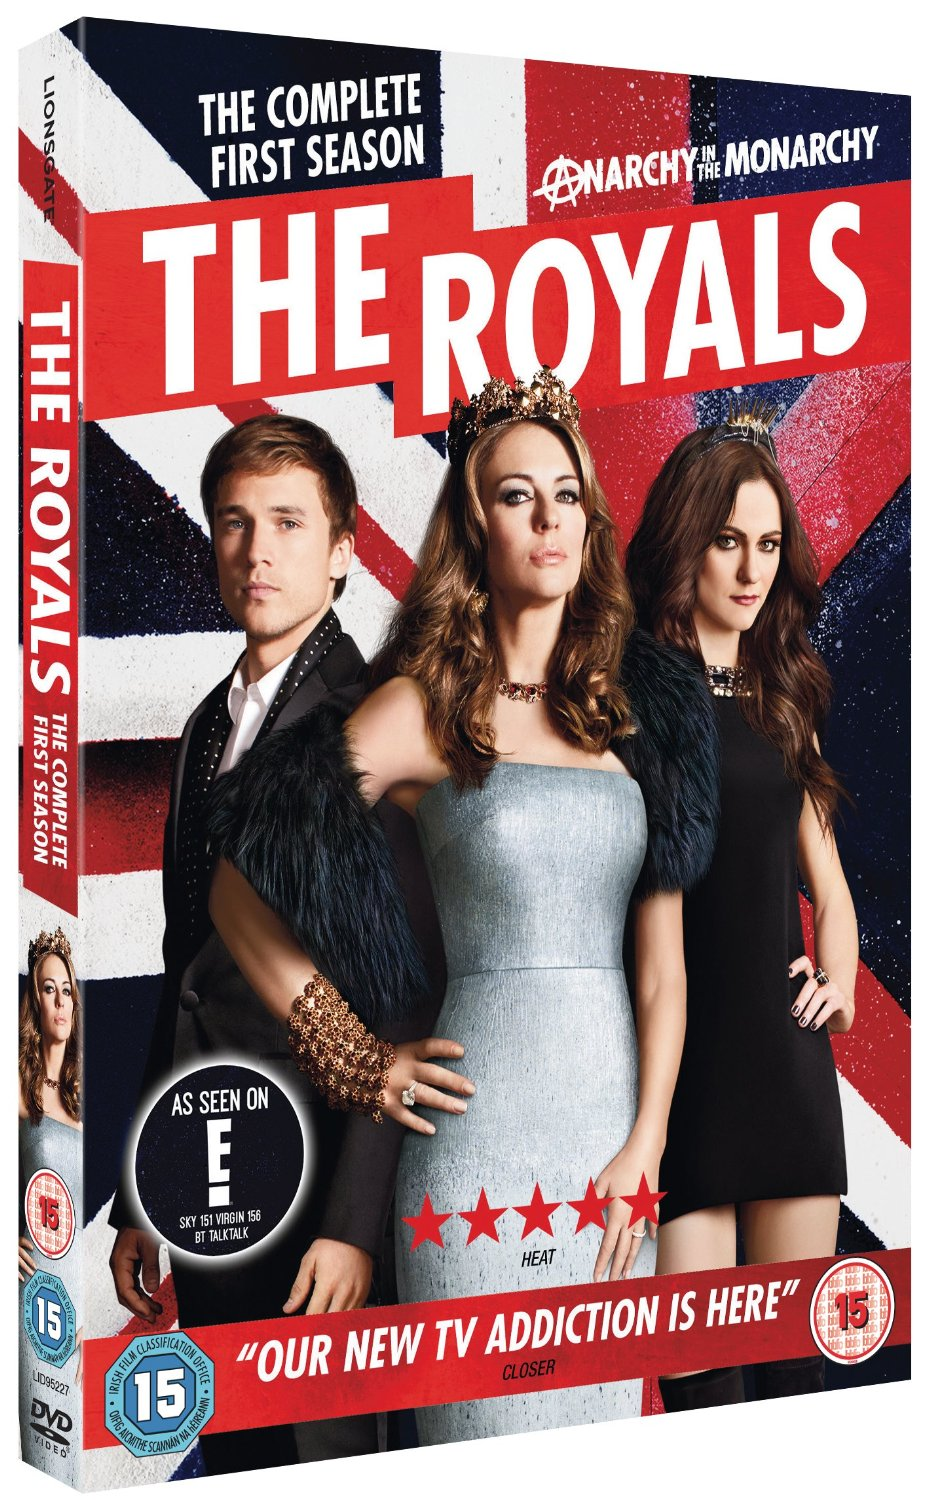 THE ROYALS SEASON 1 .. ON DVD JULY 6TH ..